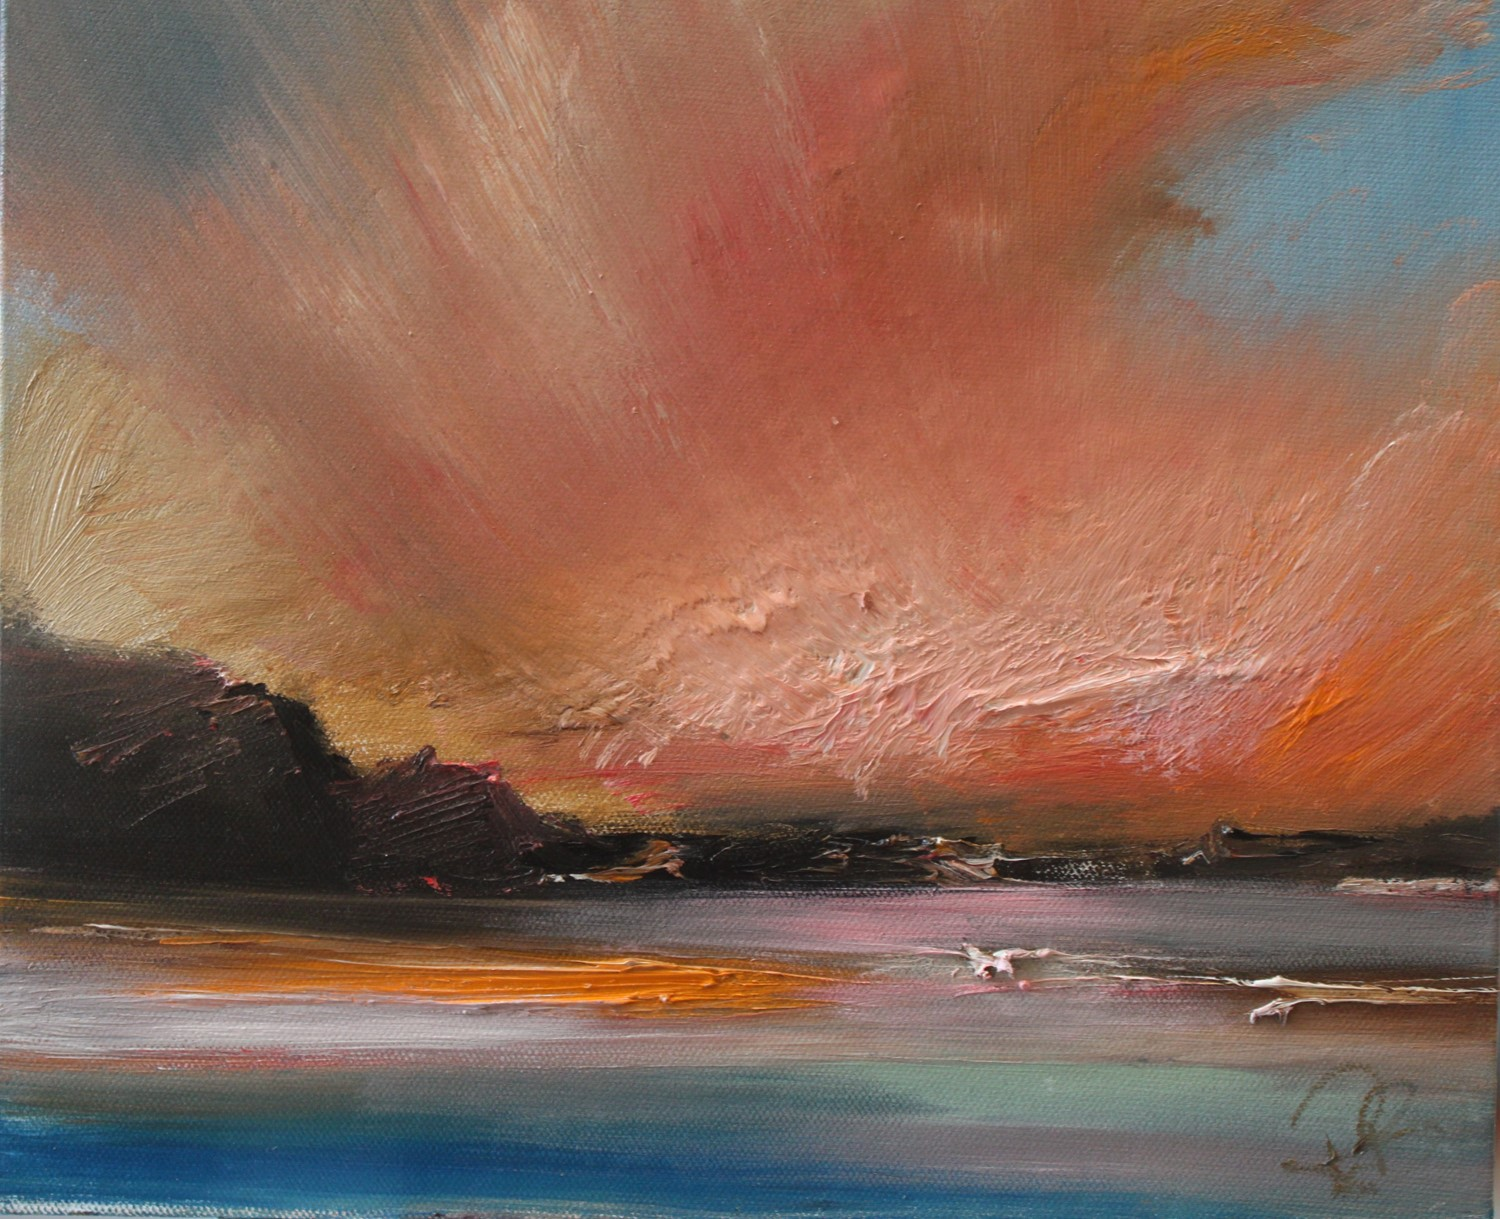 'Isles at sunset' by artist Rosanne Barr